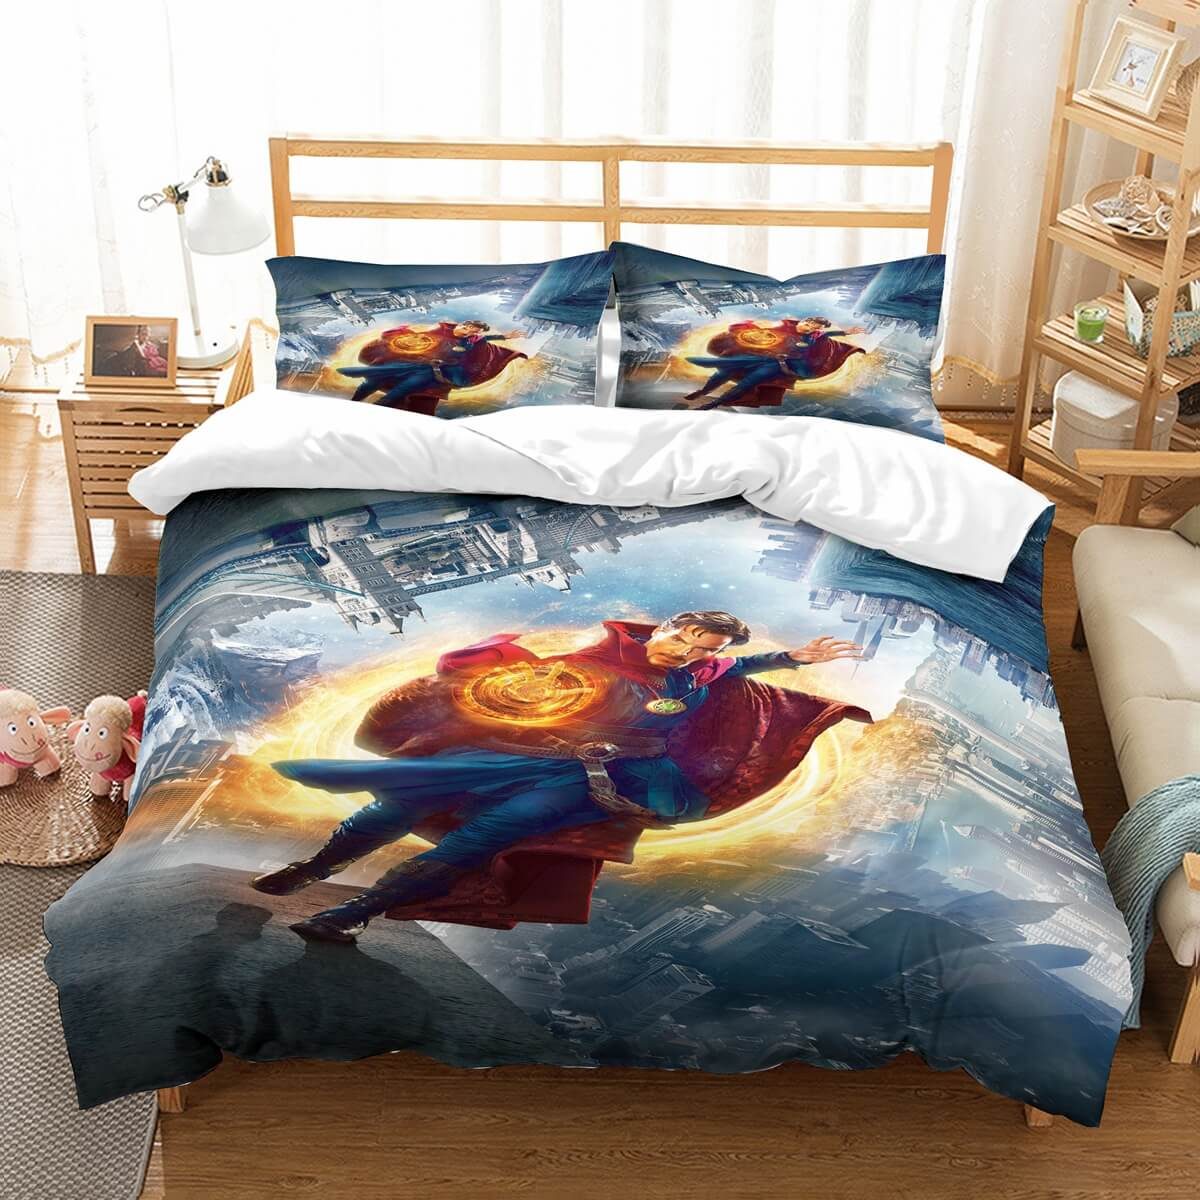 3D Customize Doctor Strange Bedding Set Duvet Cover Set Bedroom Set Bedlinen